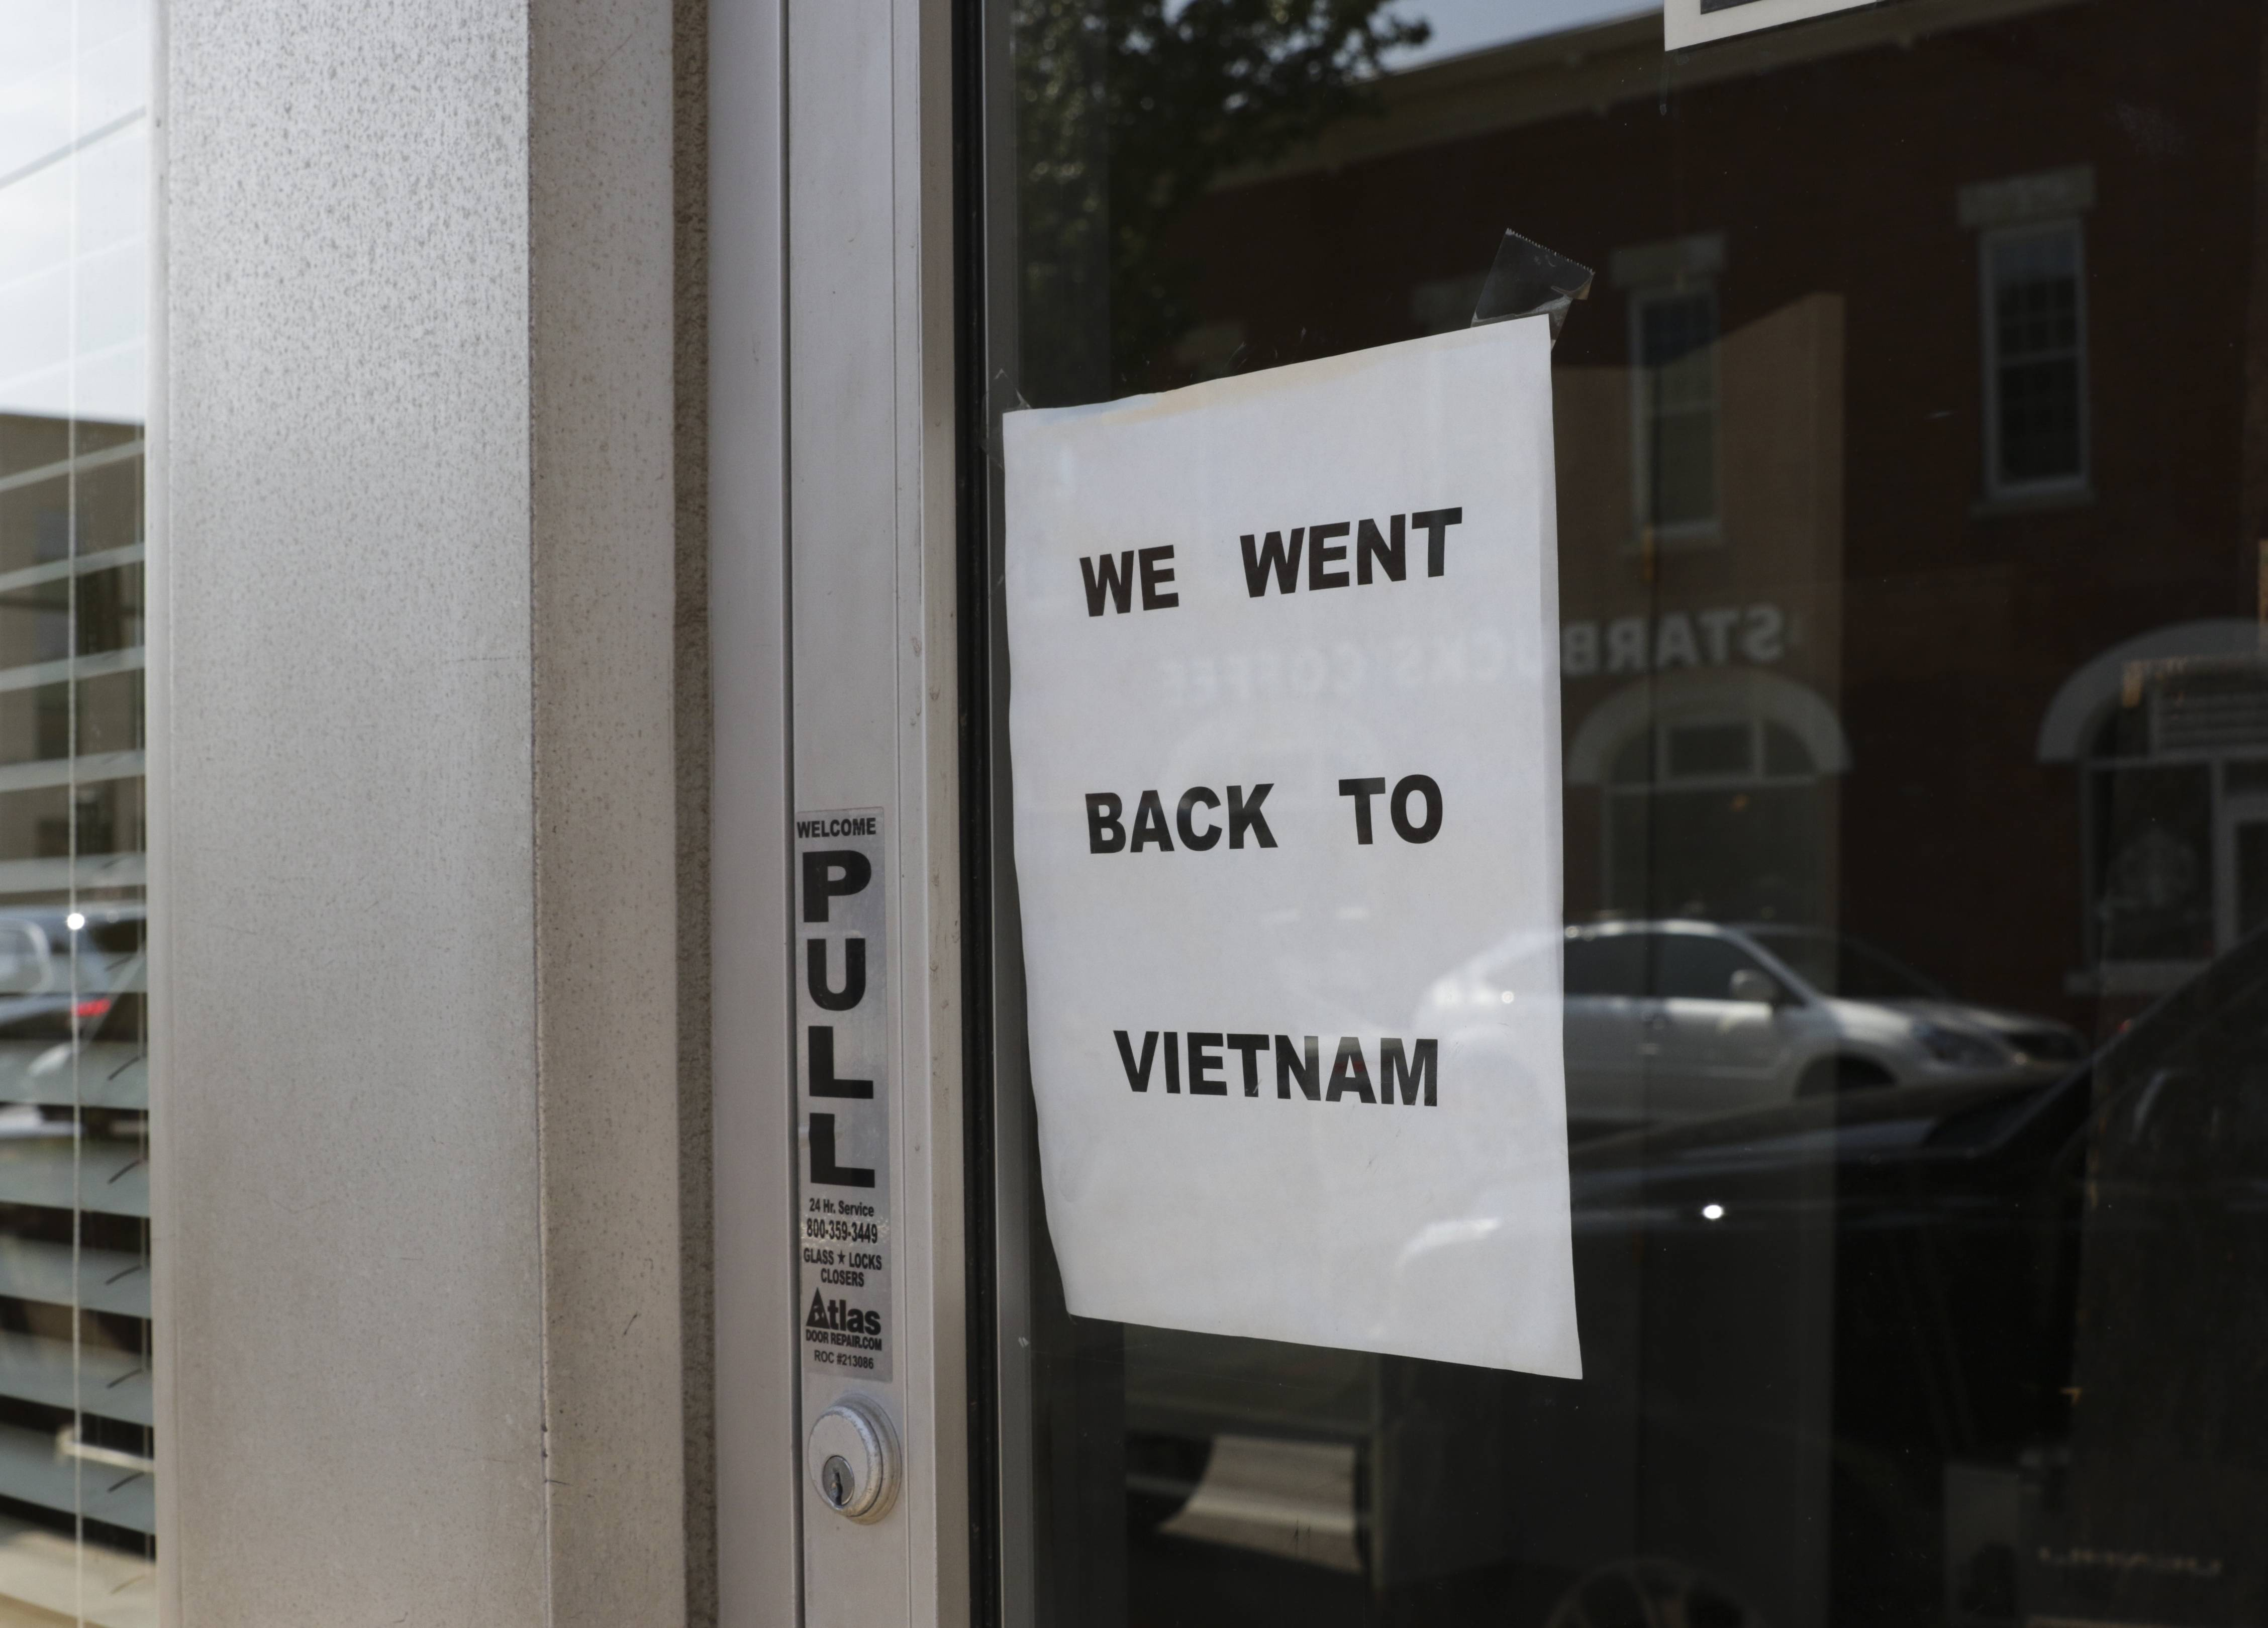 Sign in window of former Luong-Loi restaurant in downtown Wheaton. The restaurant moved to another location across the street.